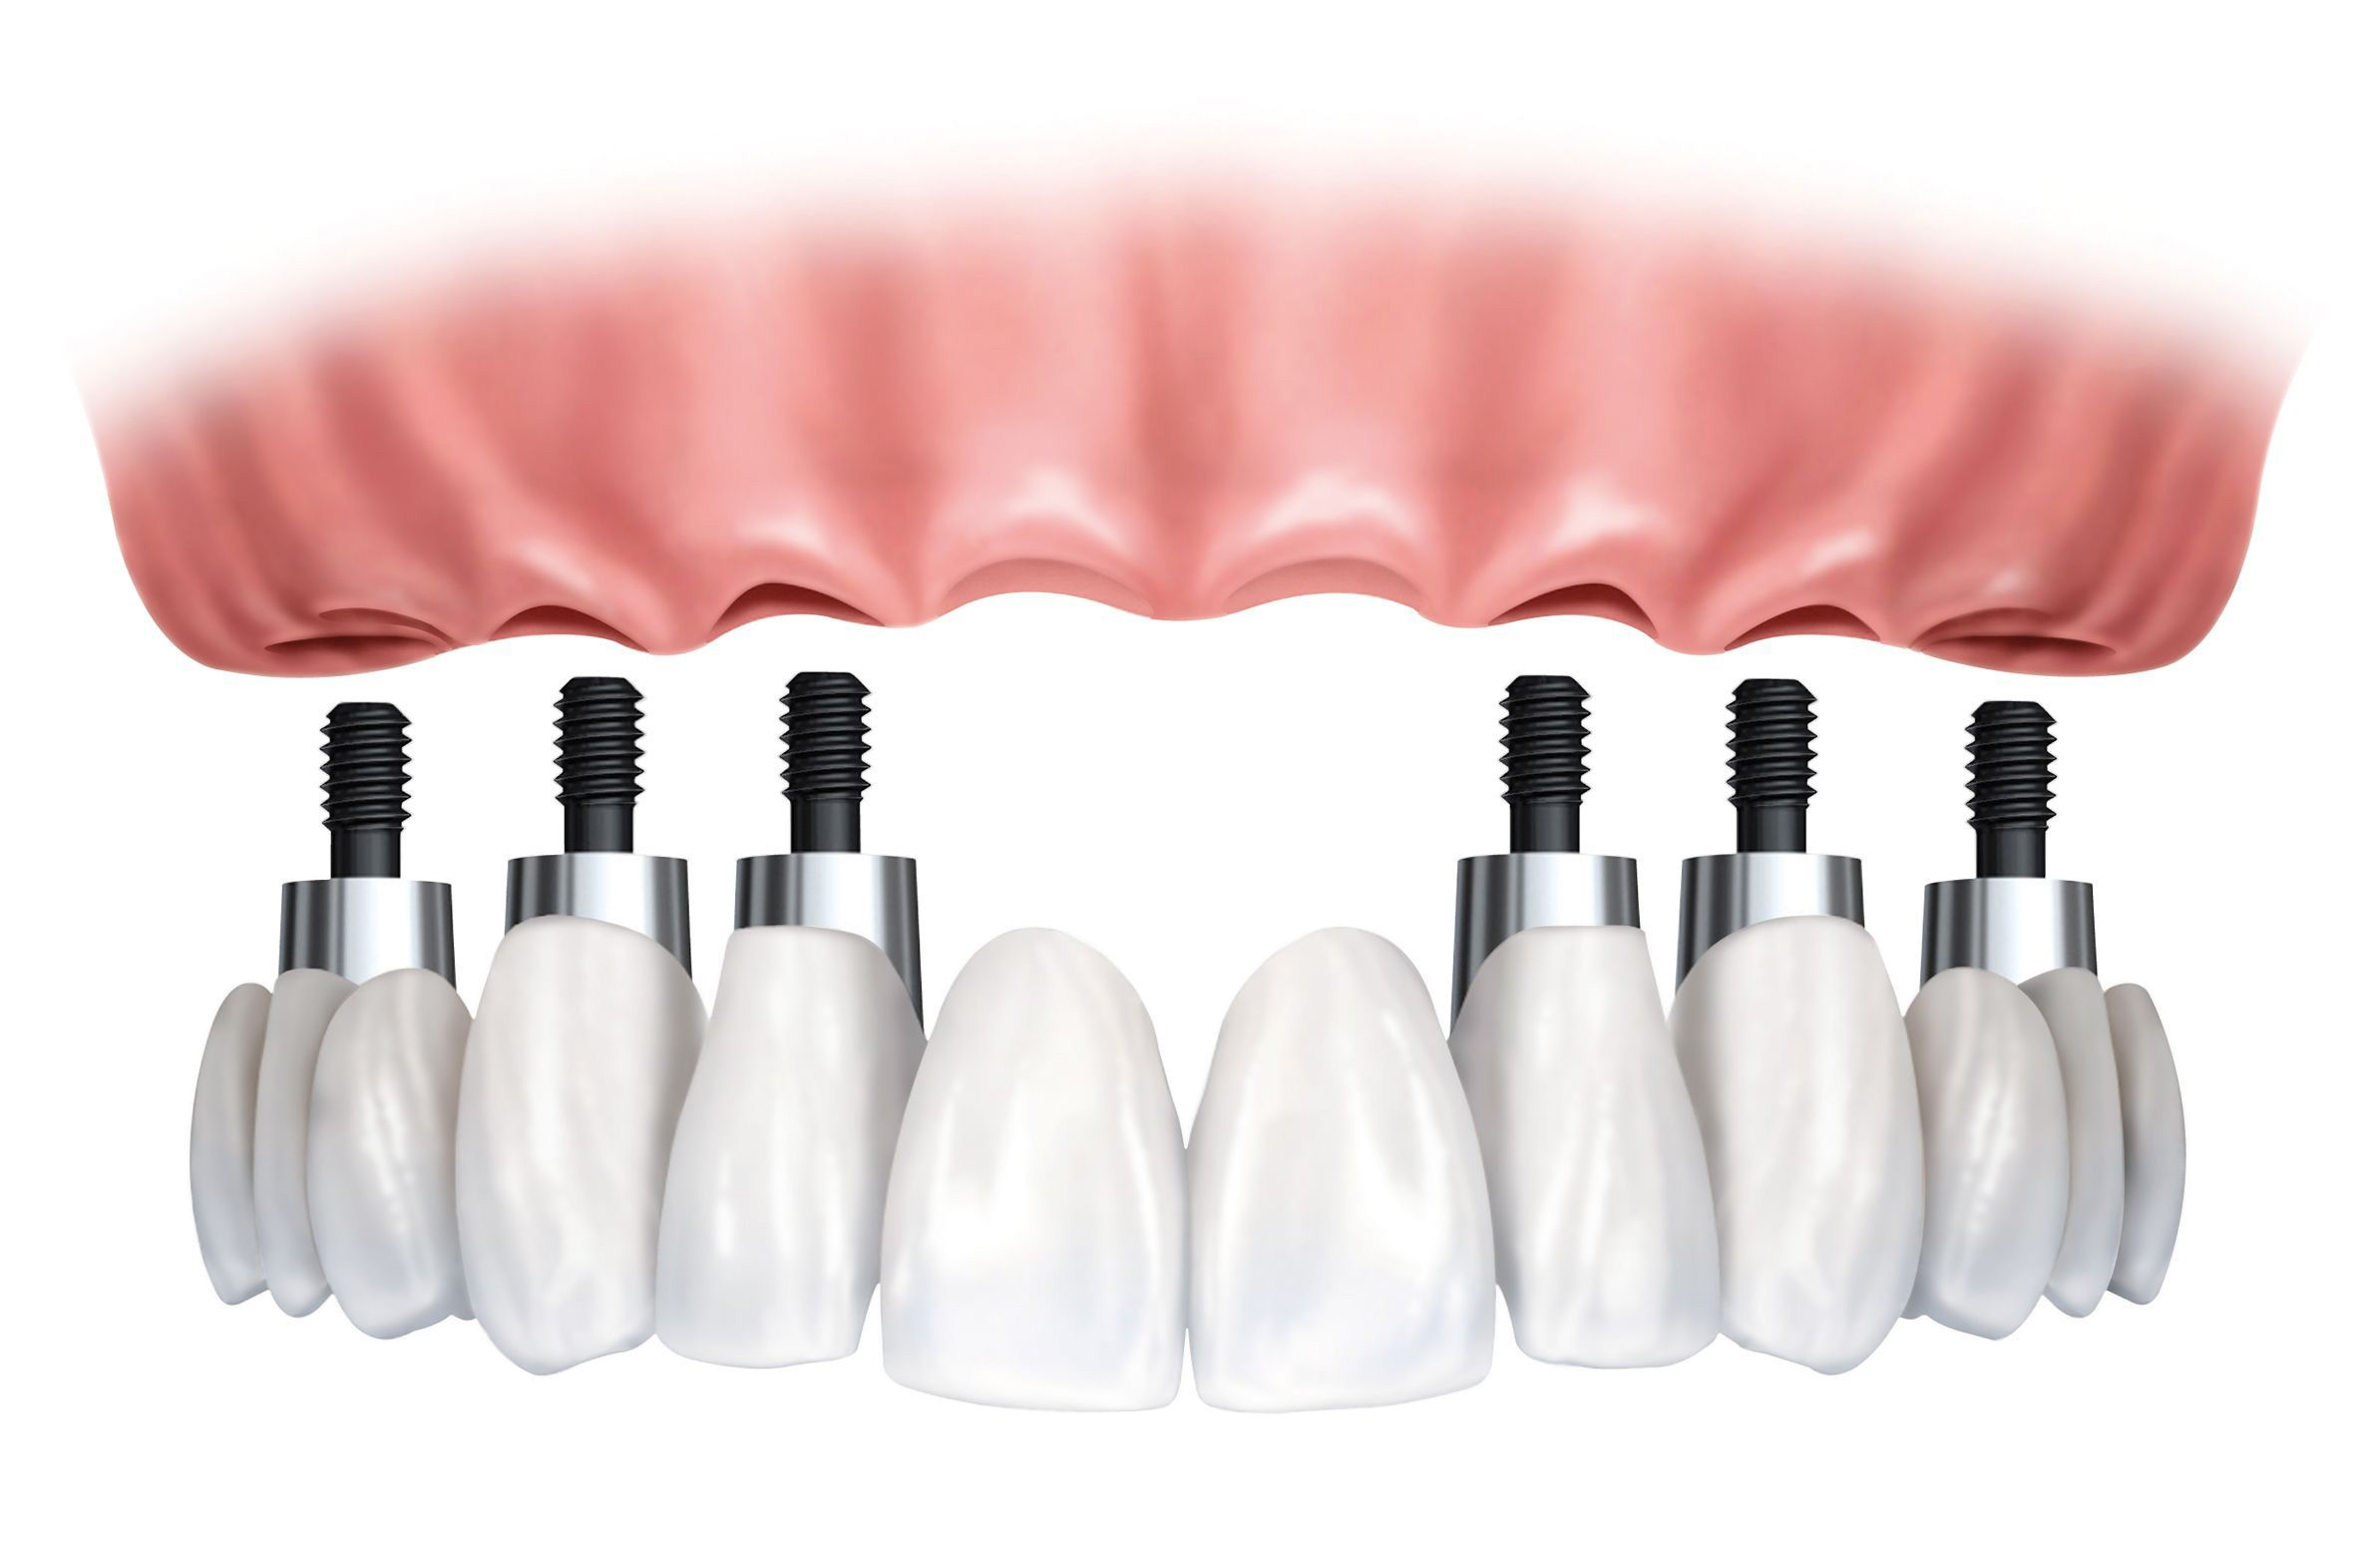 Implant-supported denture hovers below six dental implants